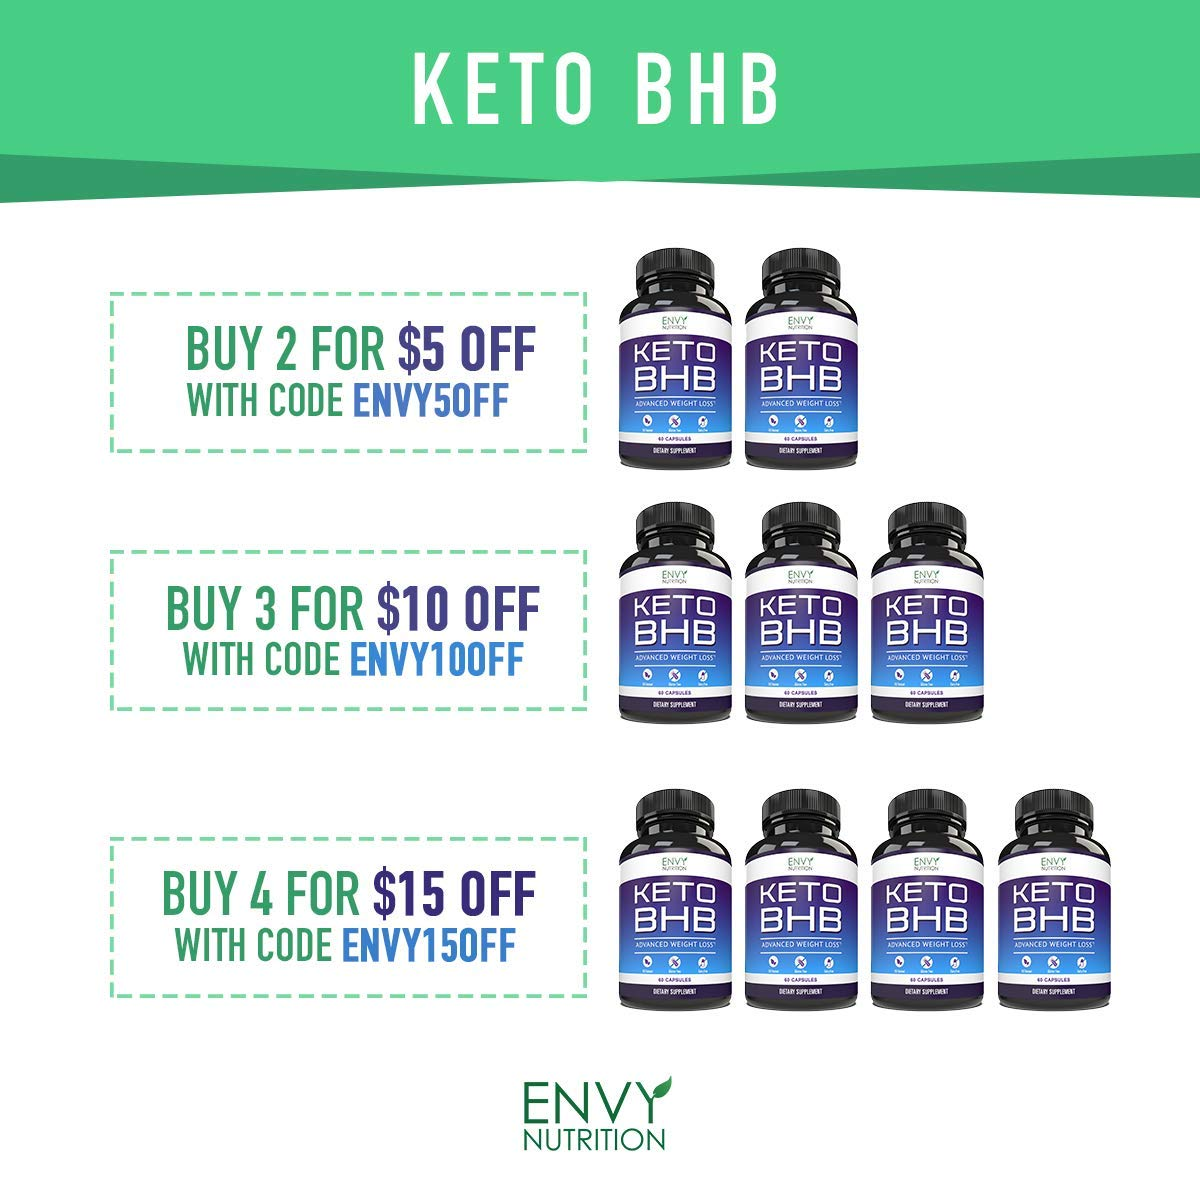 Best Keto Diet Pills - Advanced Weight Loss - BHB Salts Support Fat Burning, Ketosis, Improved Energy and Enhanced Focus by Envy Nutrition (Image #6)